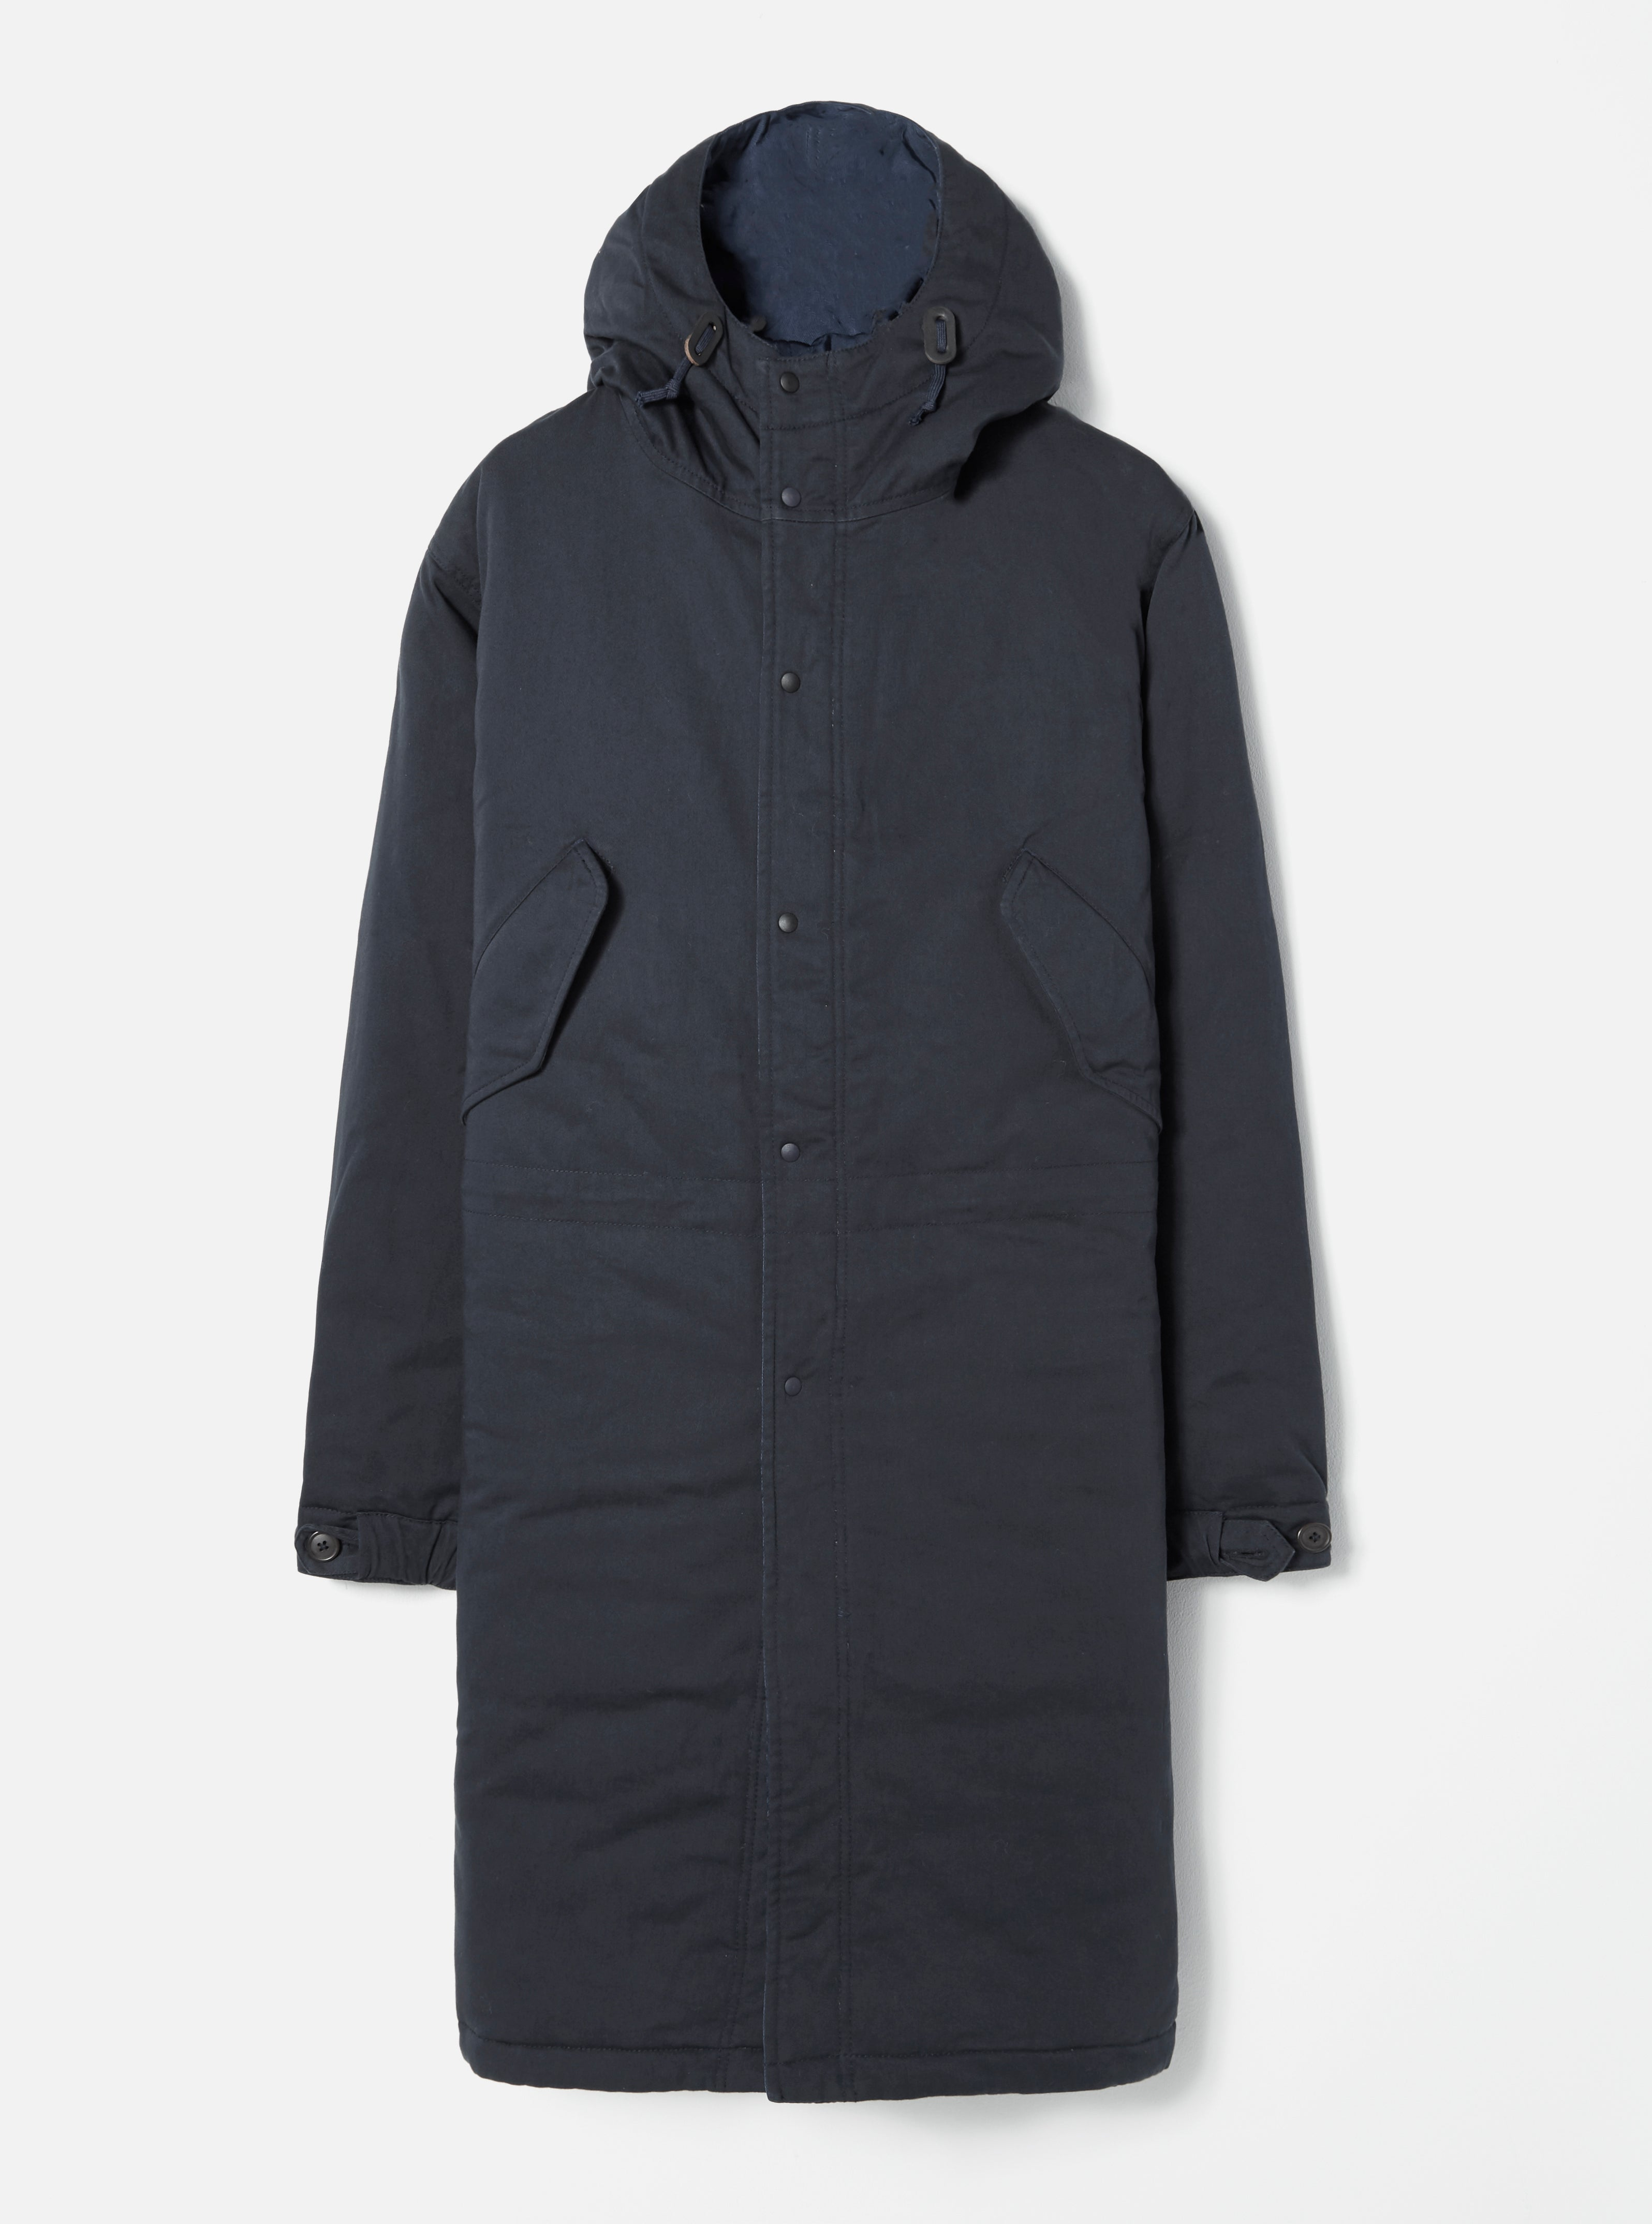 Universal Works Reversible Parka in Black Vintage Nylon/Twill